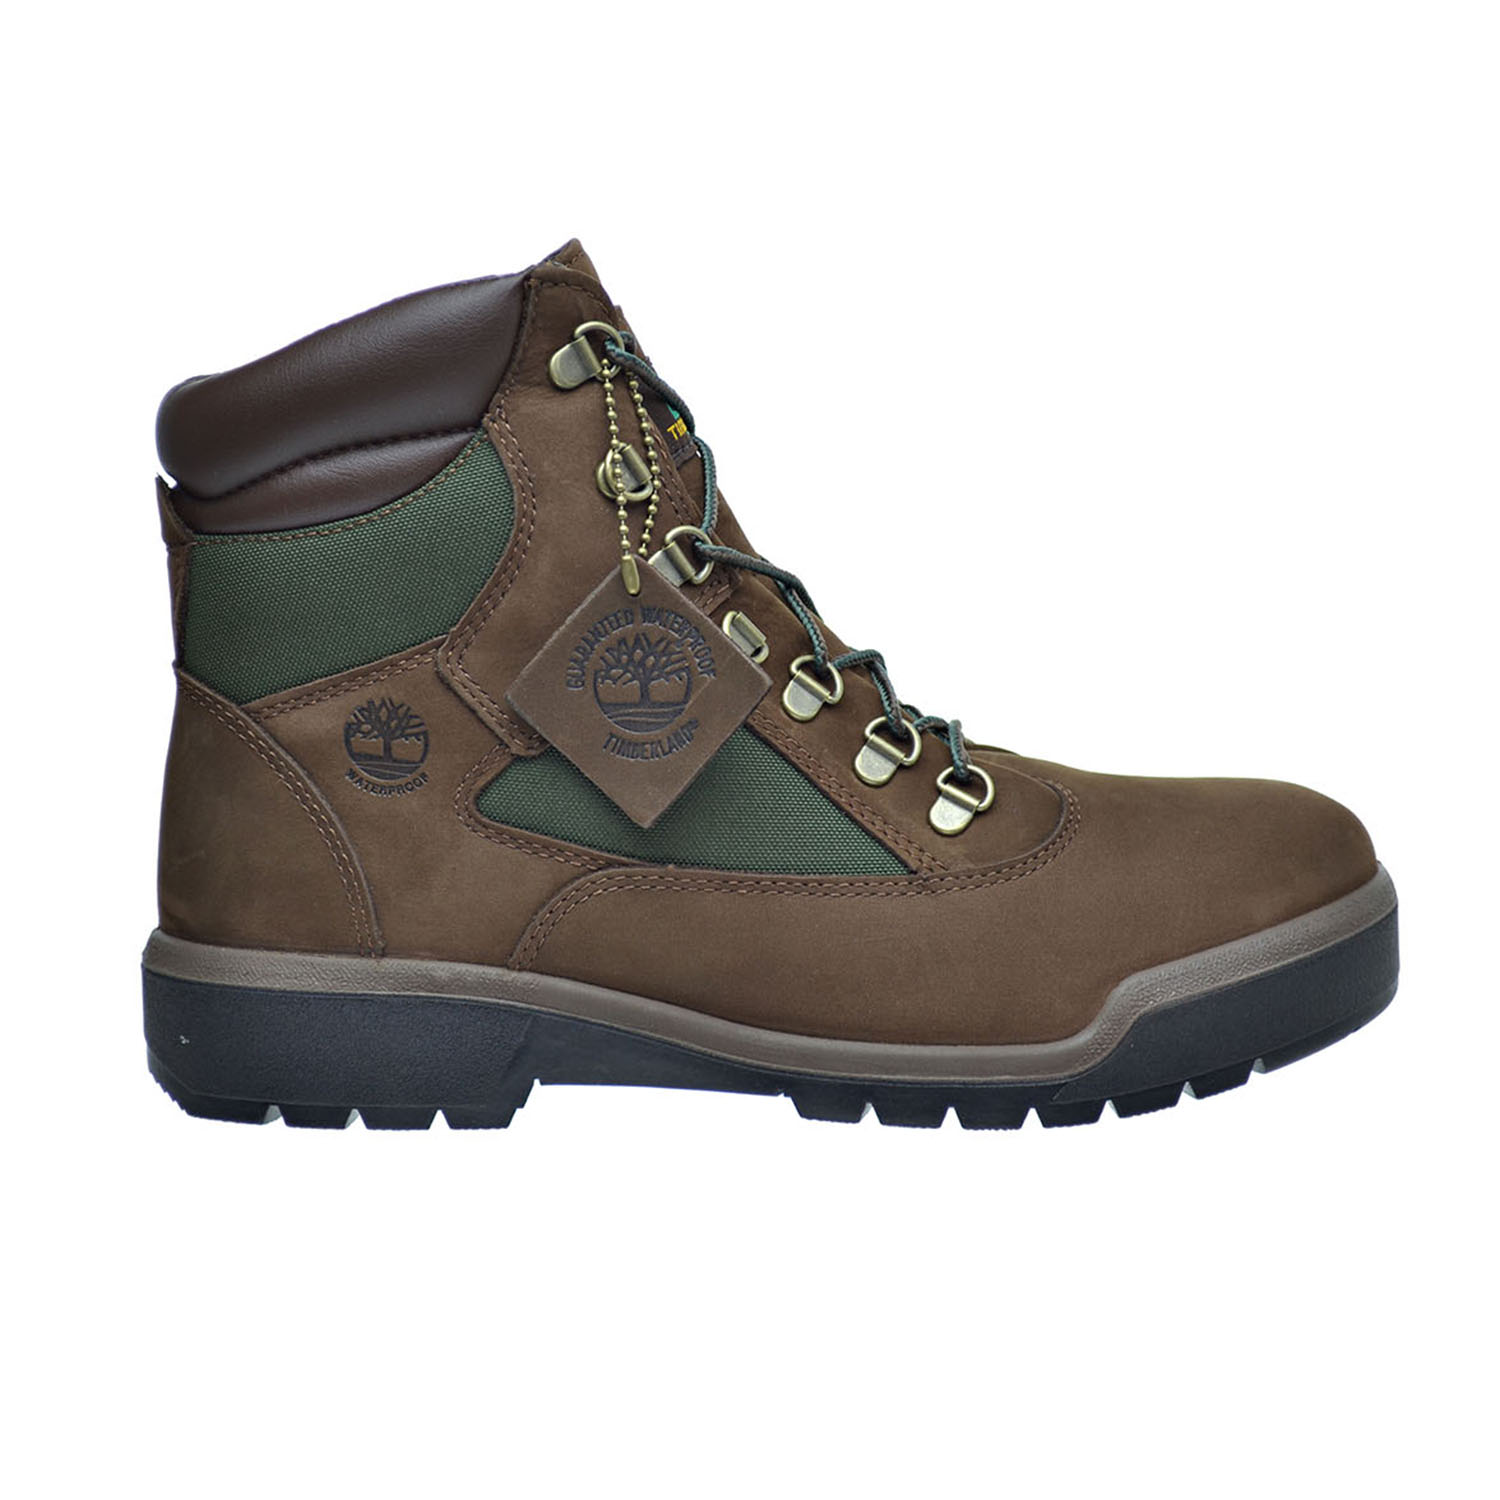 Timberland 6-Inch WP Men's Field Boots Dark Brown tb0a18ah by Timberland